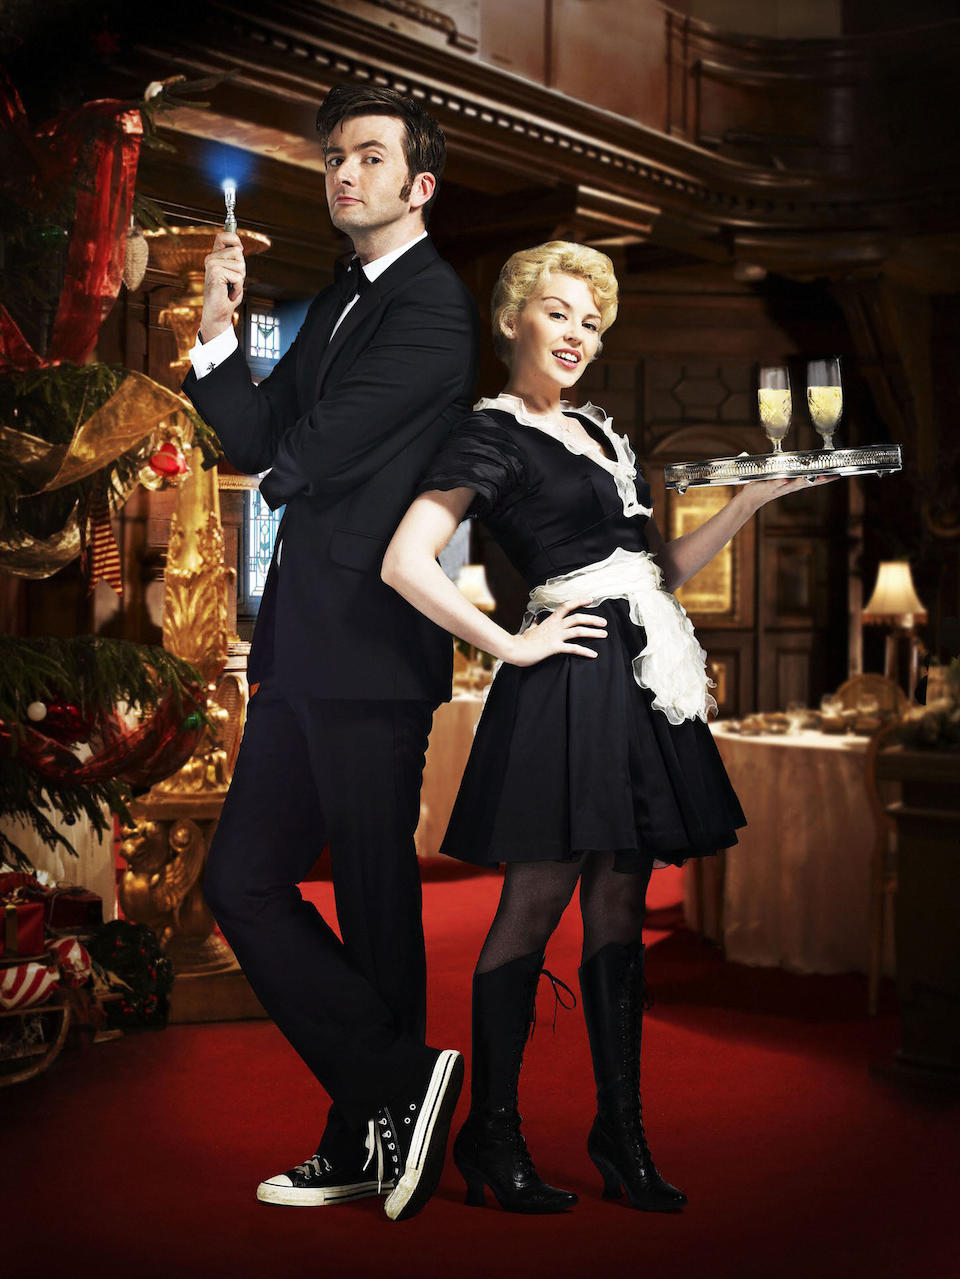 Voyage of the Damned, December 2007 Astrid Peth (Kylie Minogue), a complete waitress costume, comprising;